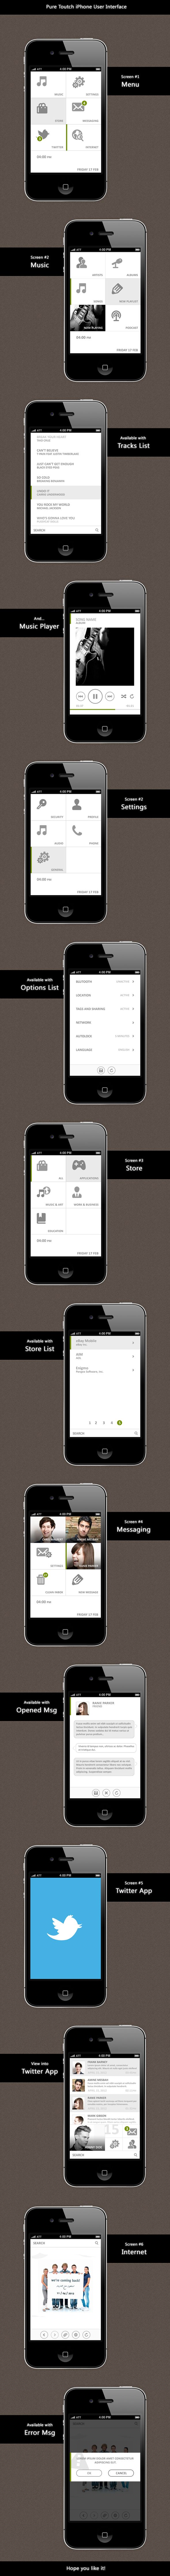 Pure Toutch iPhone User Interface